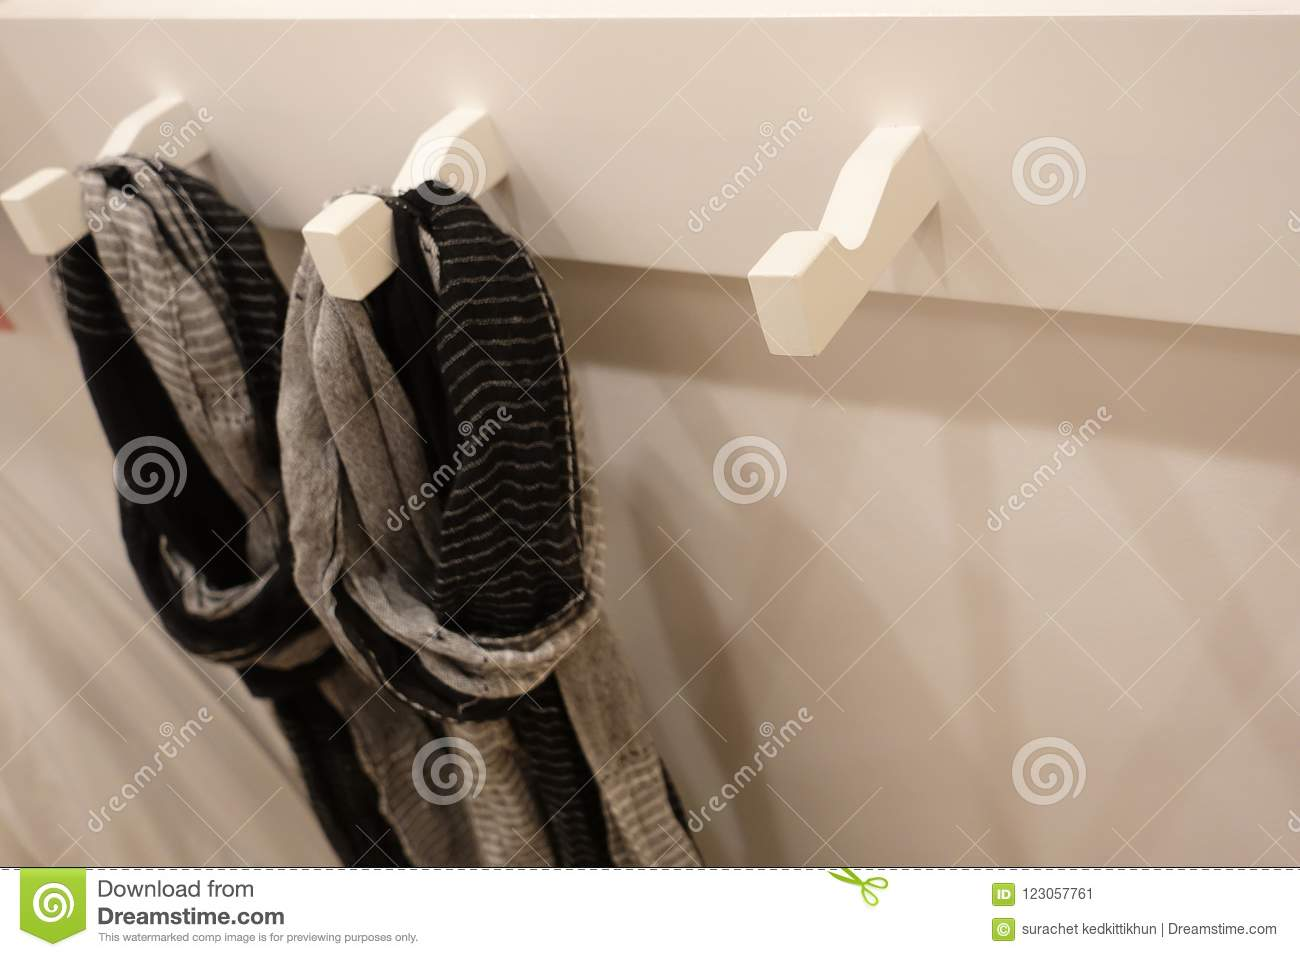 Modern wooden wardrobe with clothes hanging on rail in walk in closet,. Choice of fashion clothes of different colors on wooden hangers Stock Image